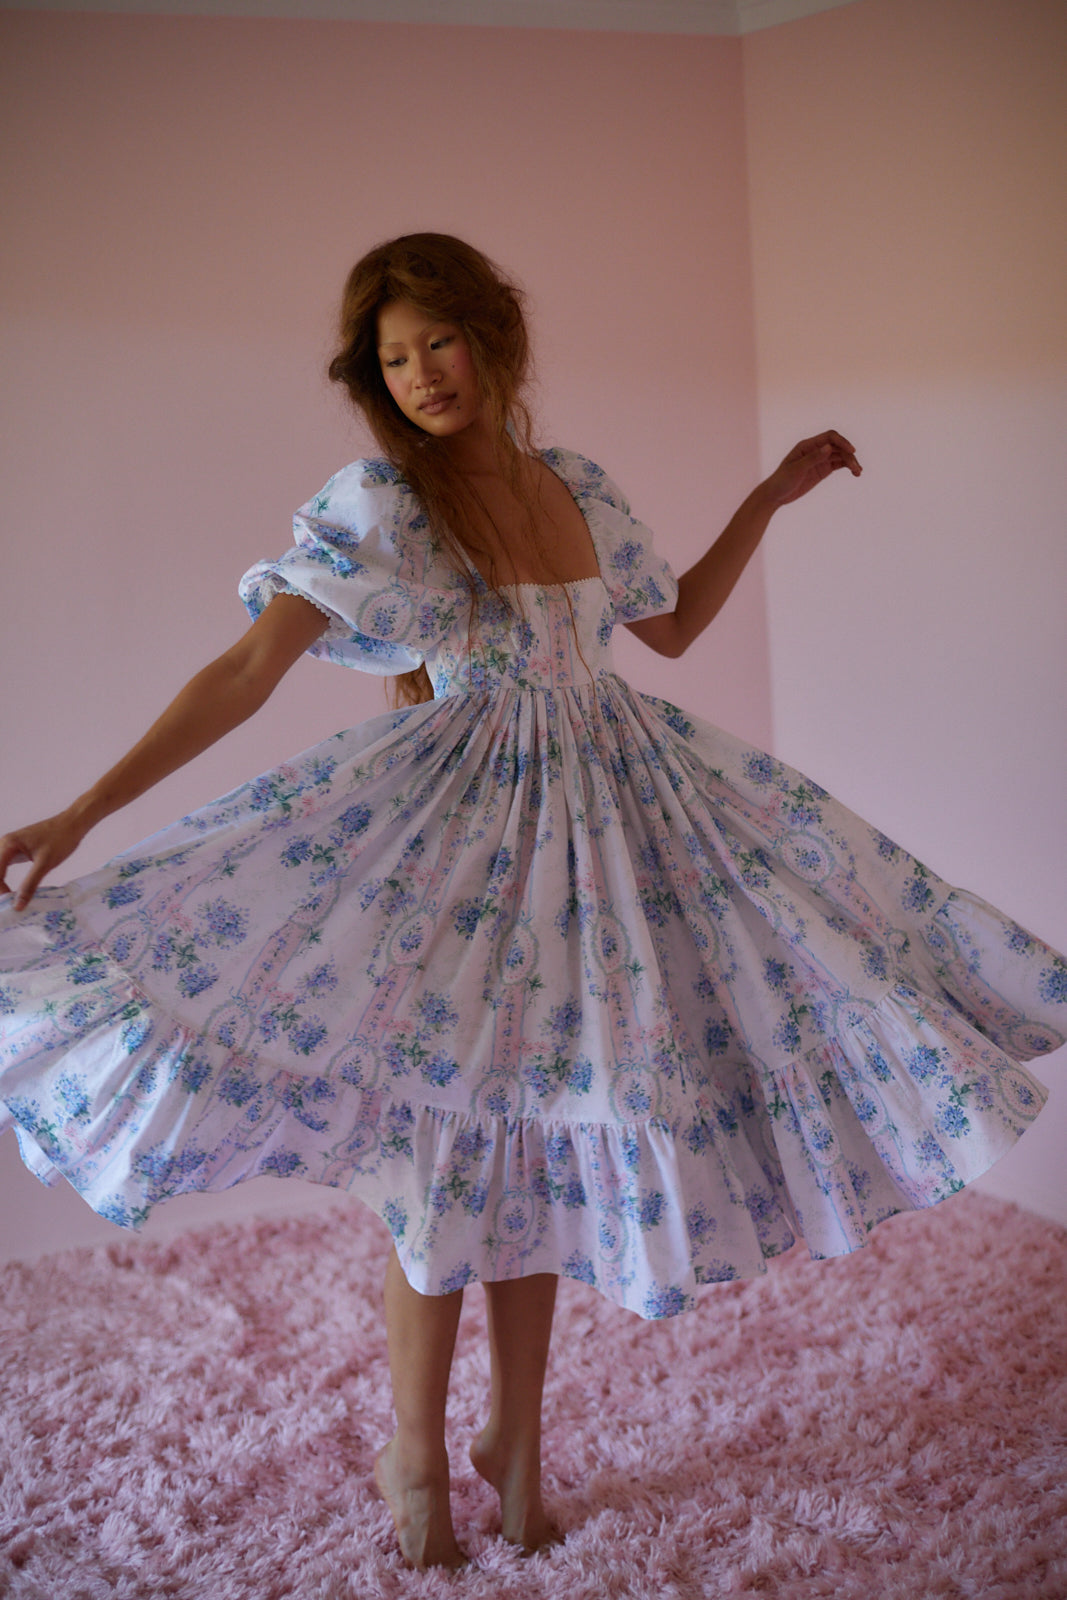 La Belle Etoile French Puff Dress *PRE ORDER*